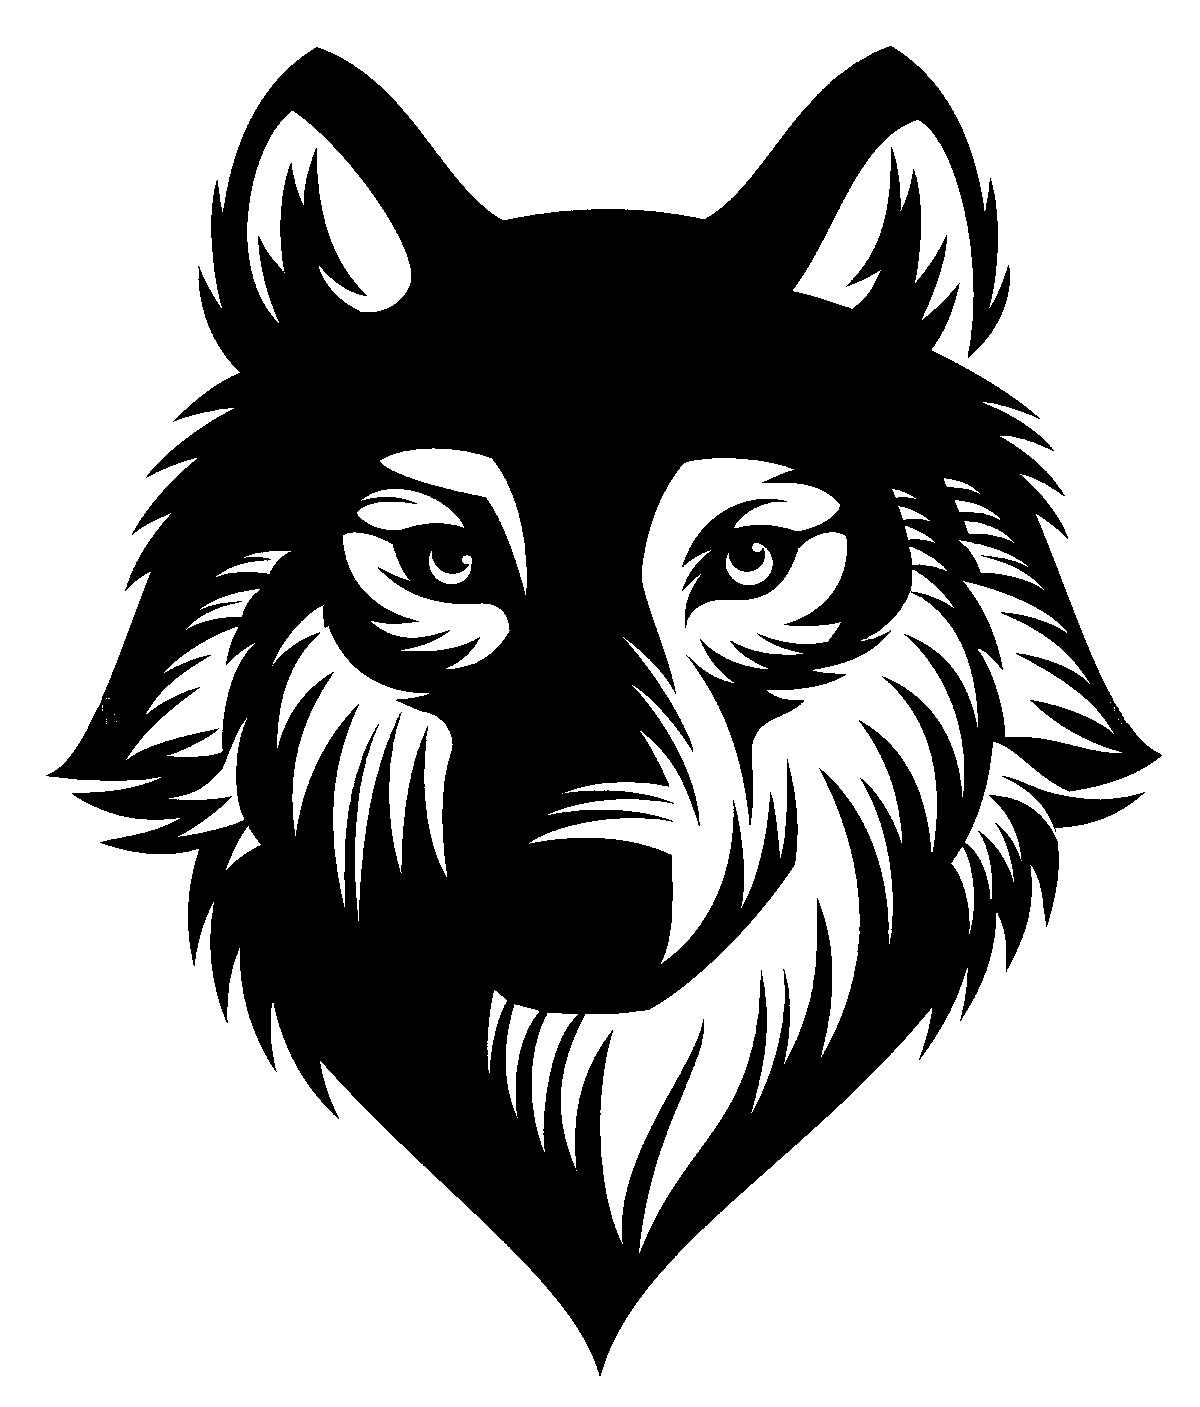 Wolf Stencil PDF File Free Download - 3axis co